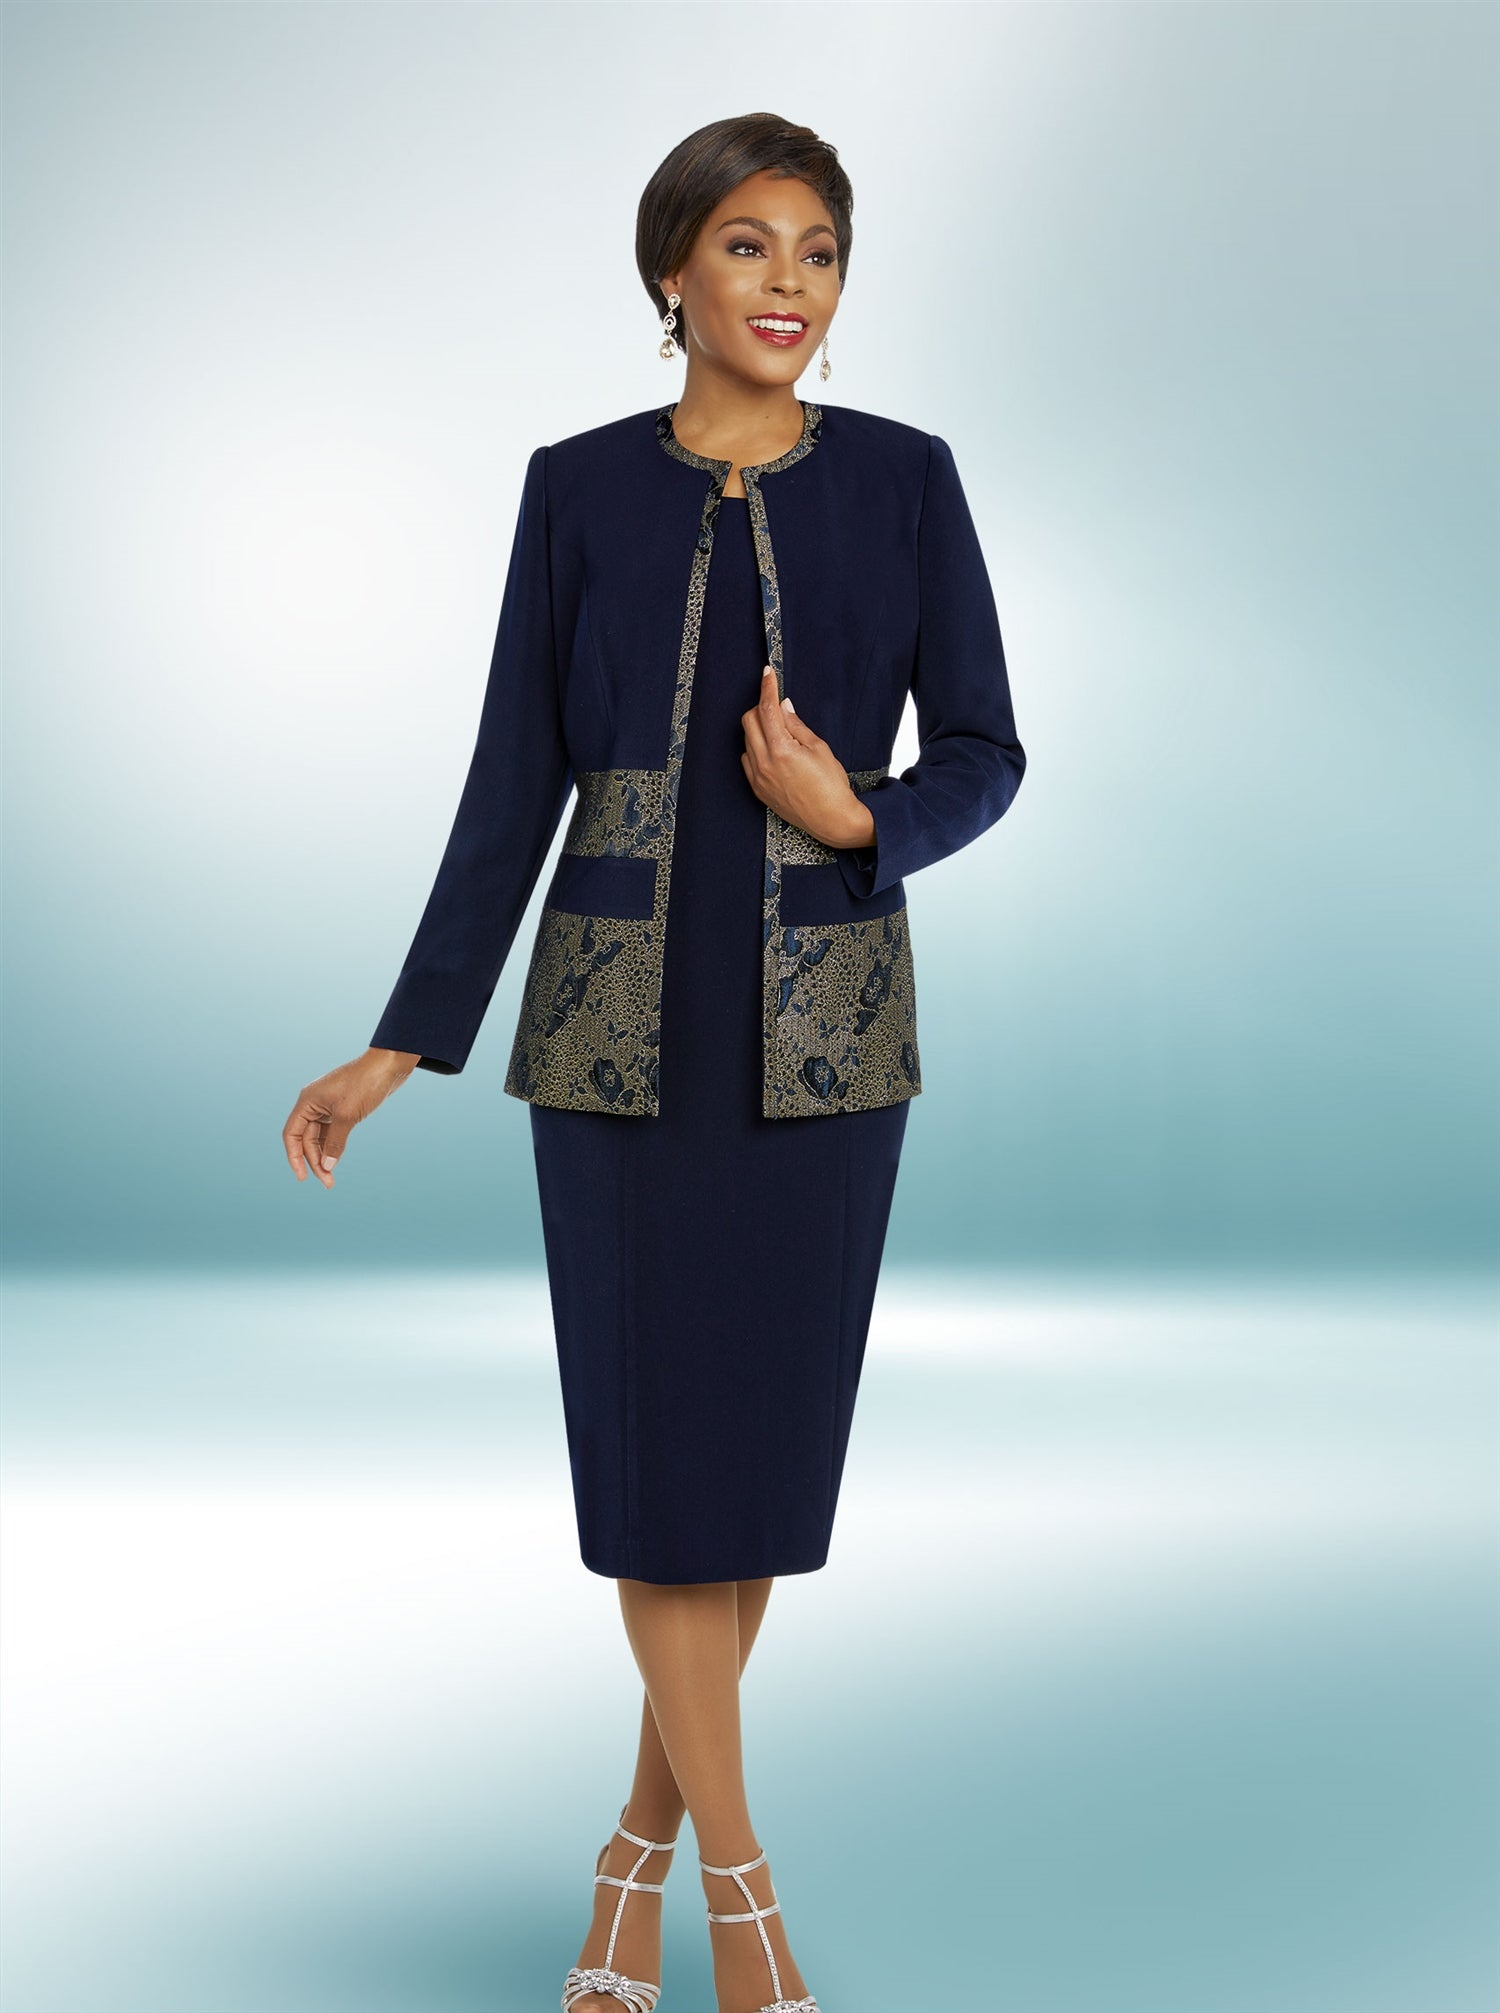 Ben Marc Executive 11837 2pc Jacket Dress